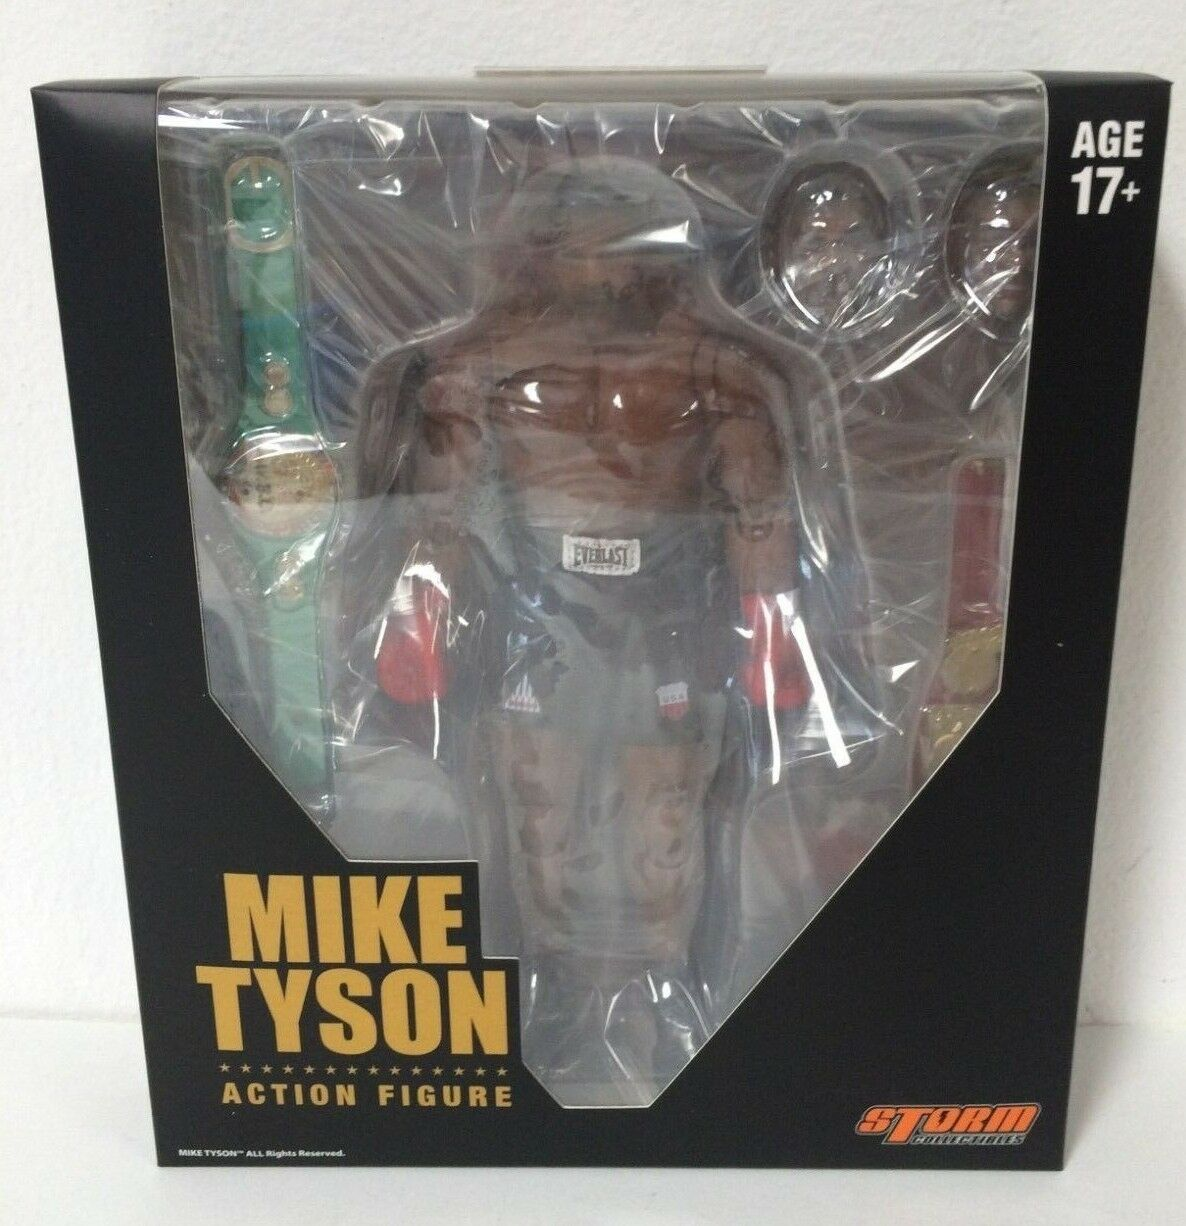 100% AUTHENTIC Storm Collectibles Mike Tyson 1 12 Scale  Action Figure US SELLER  vous rendre satisfait